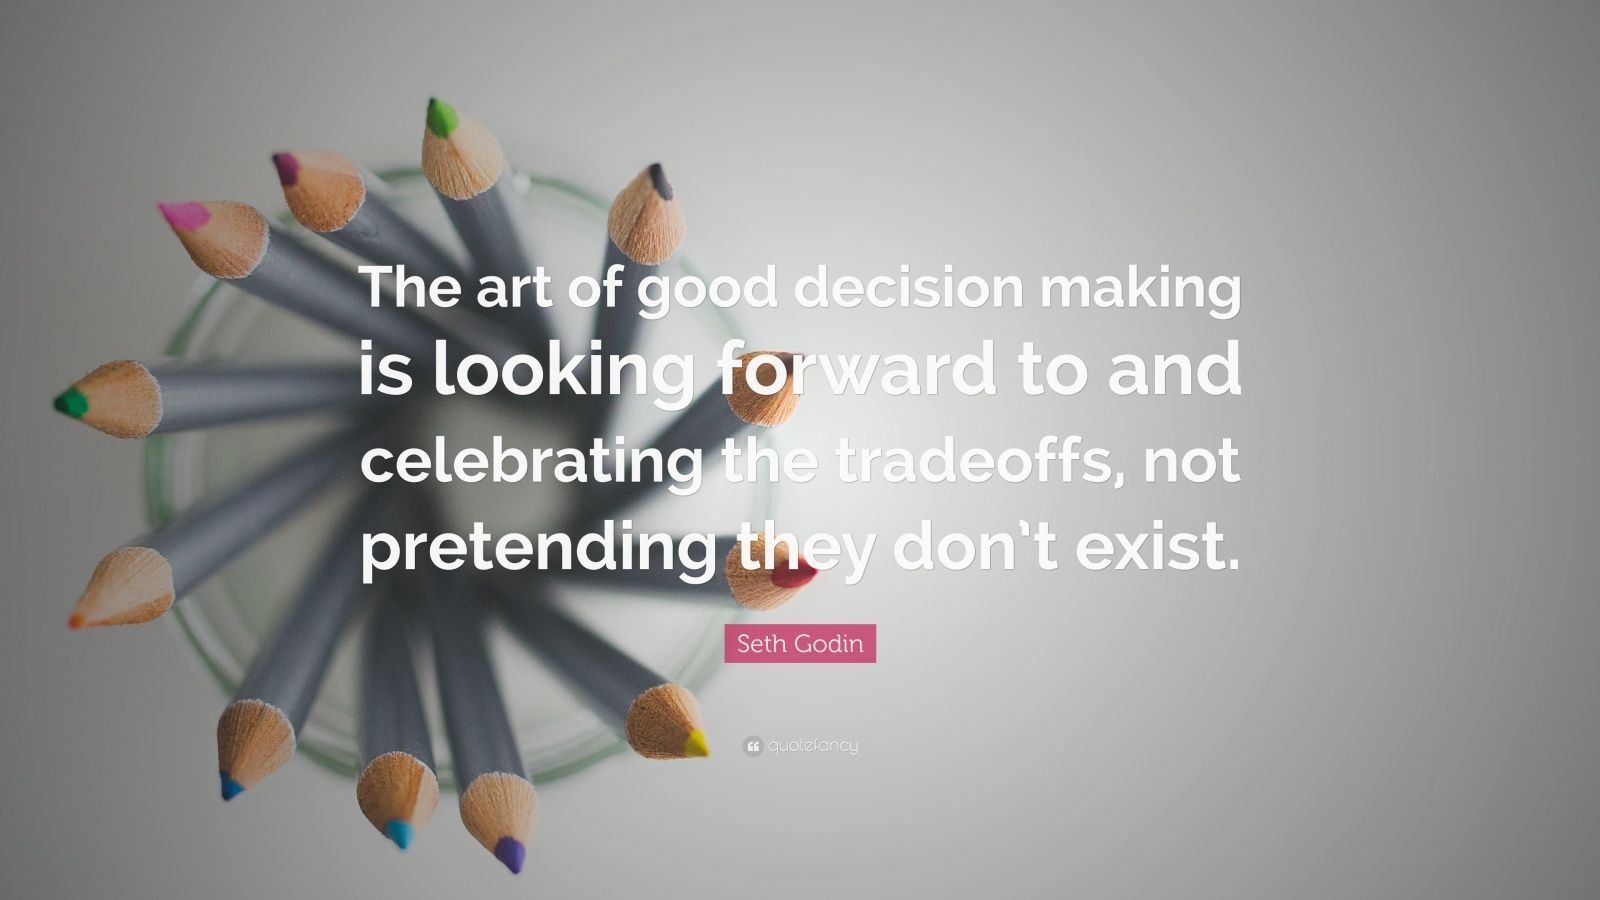 """Seth Godin Quote: """"The art of good decision making is looking forward to and celebrating the tradeoffs, not pretending they don't exist."""""""